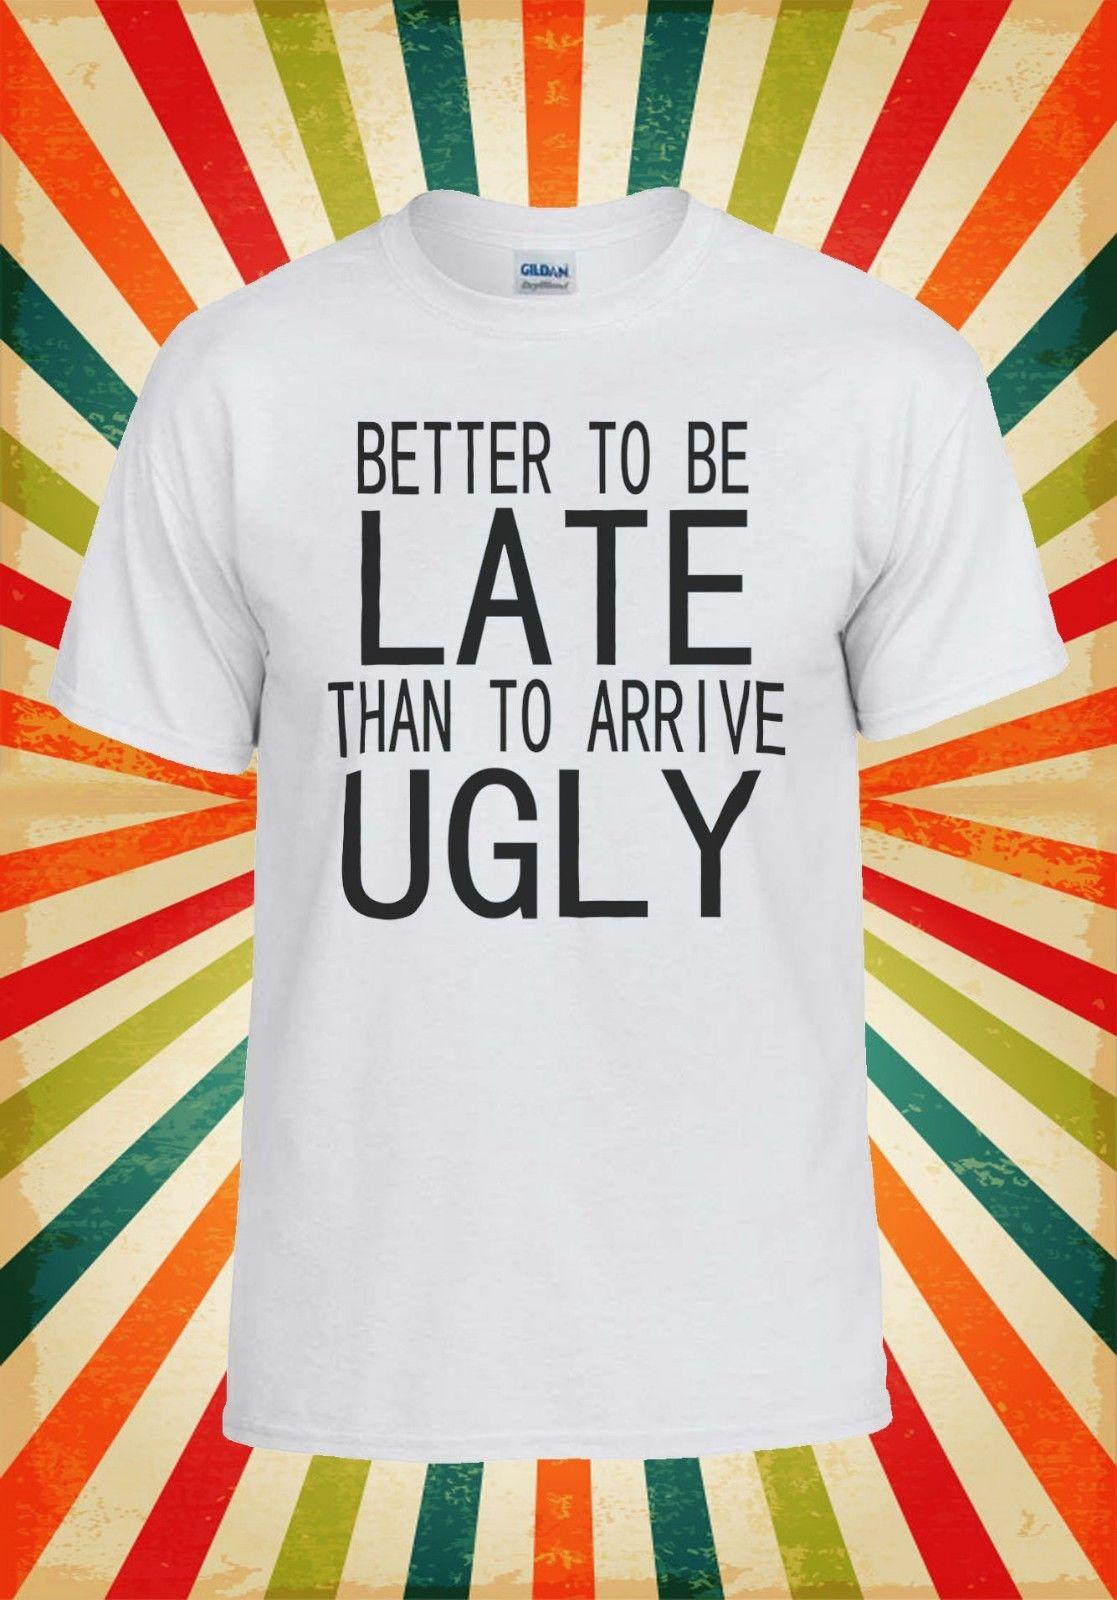 e7ae8ba2a Better To Be Late Than To Arrive Ugly Men Women Vest Tank Top Unisex T Shirt  831 Funny Tees Shirts MENS T SHIRT Printed One Day T Shirt Best Site For T  ...